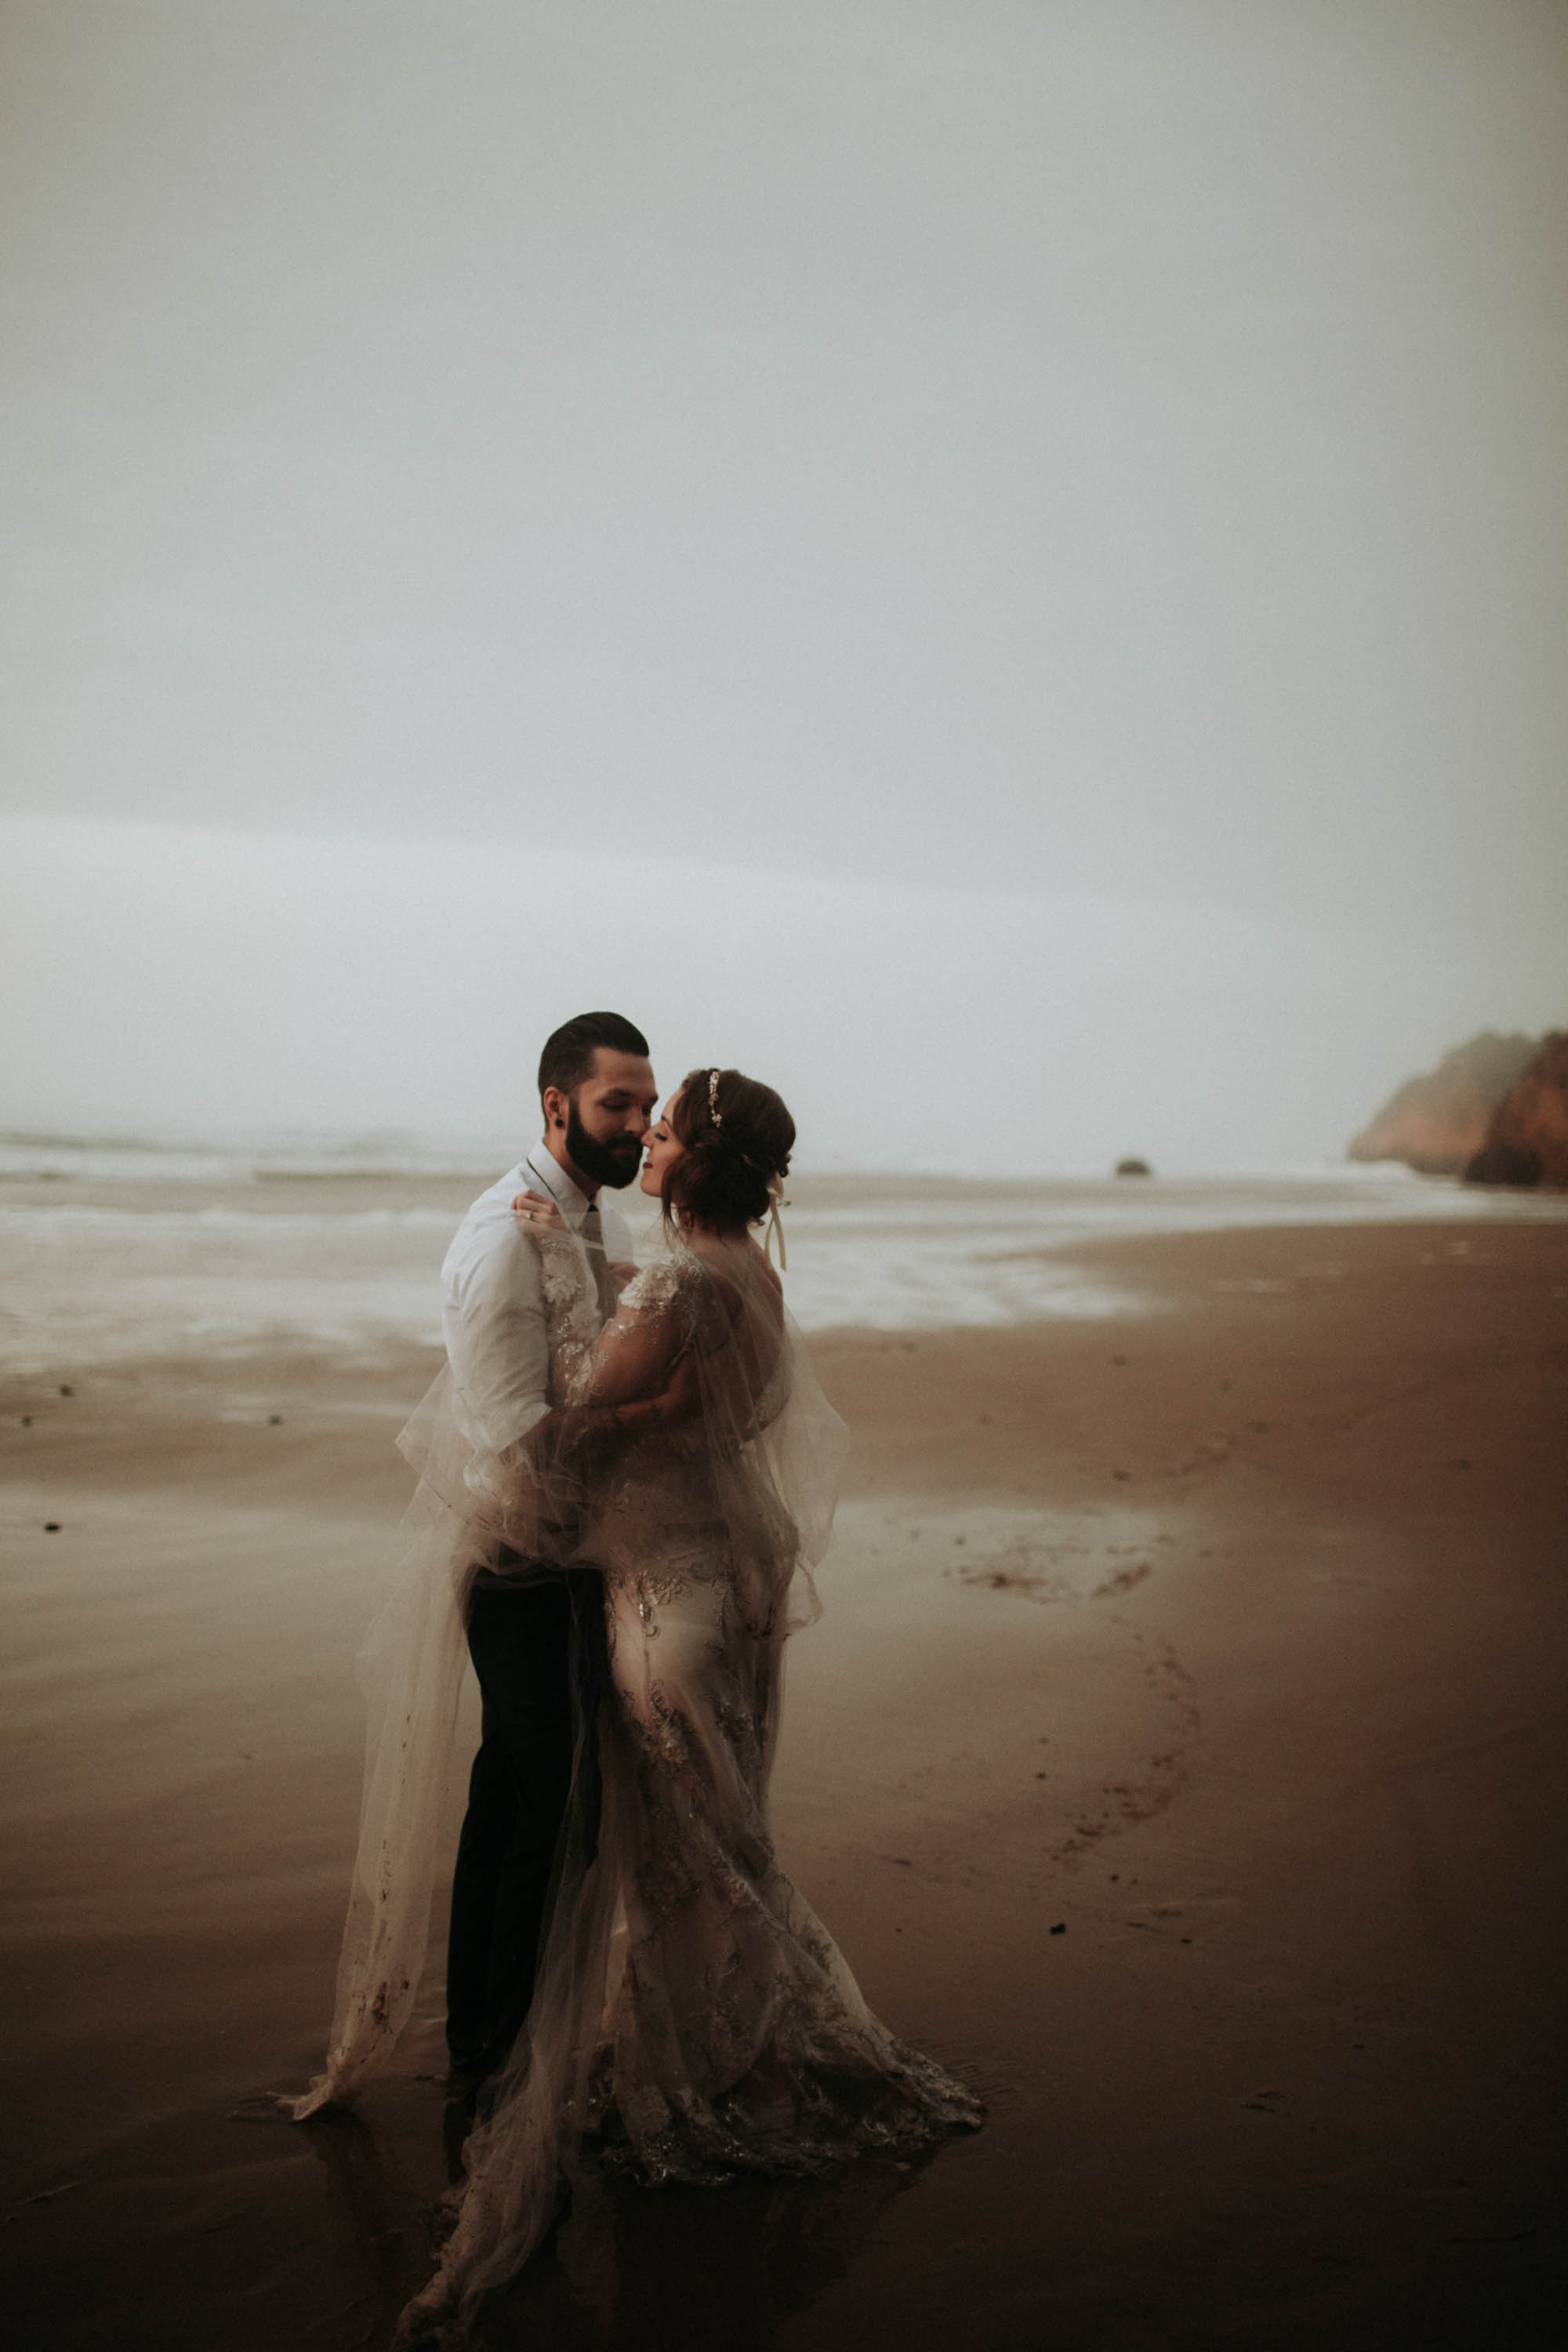 canonbeach_elopment_weddingphotographer-157.jpg